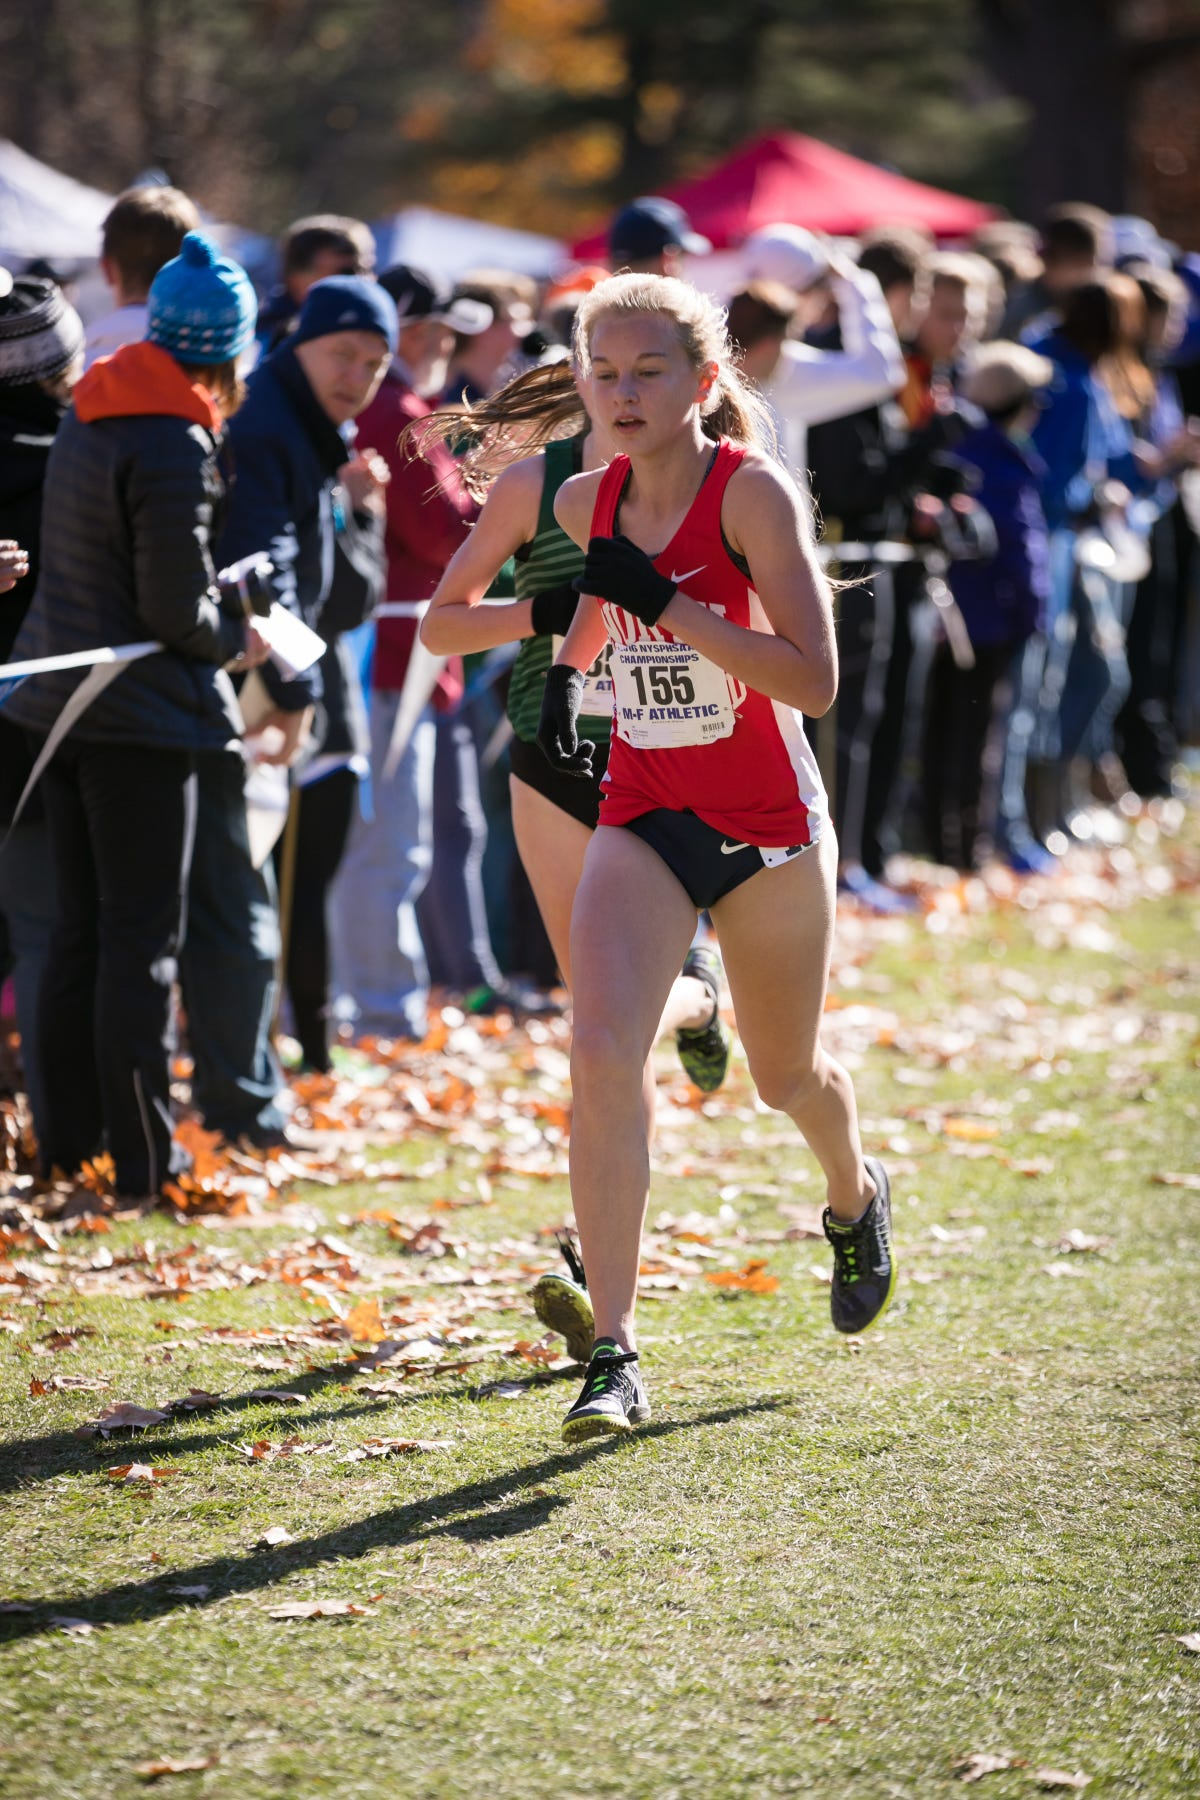 low priced 84e87 ed115 Tuohy 13th out of 200 runners at Nike X-C Nationals